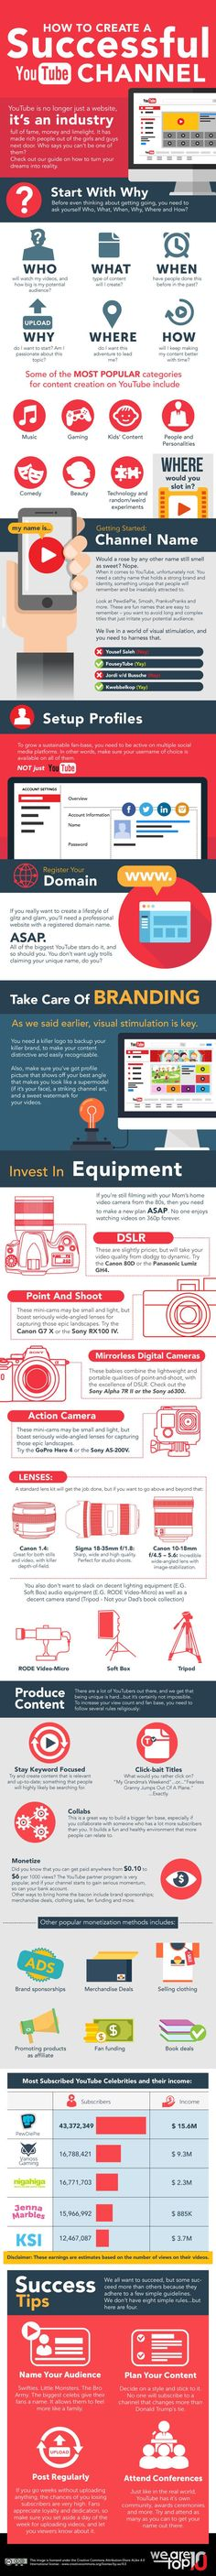 How to Create a Successful YouTube Channel #Infographic ~ Visualistan